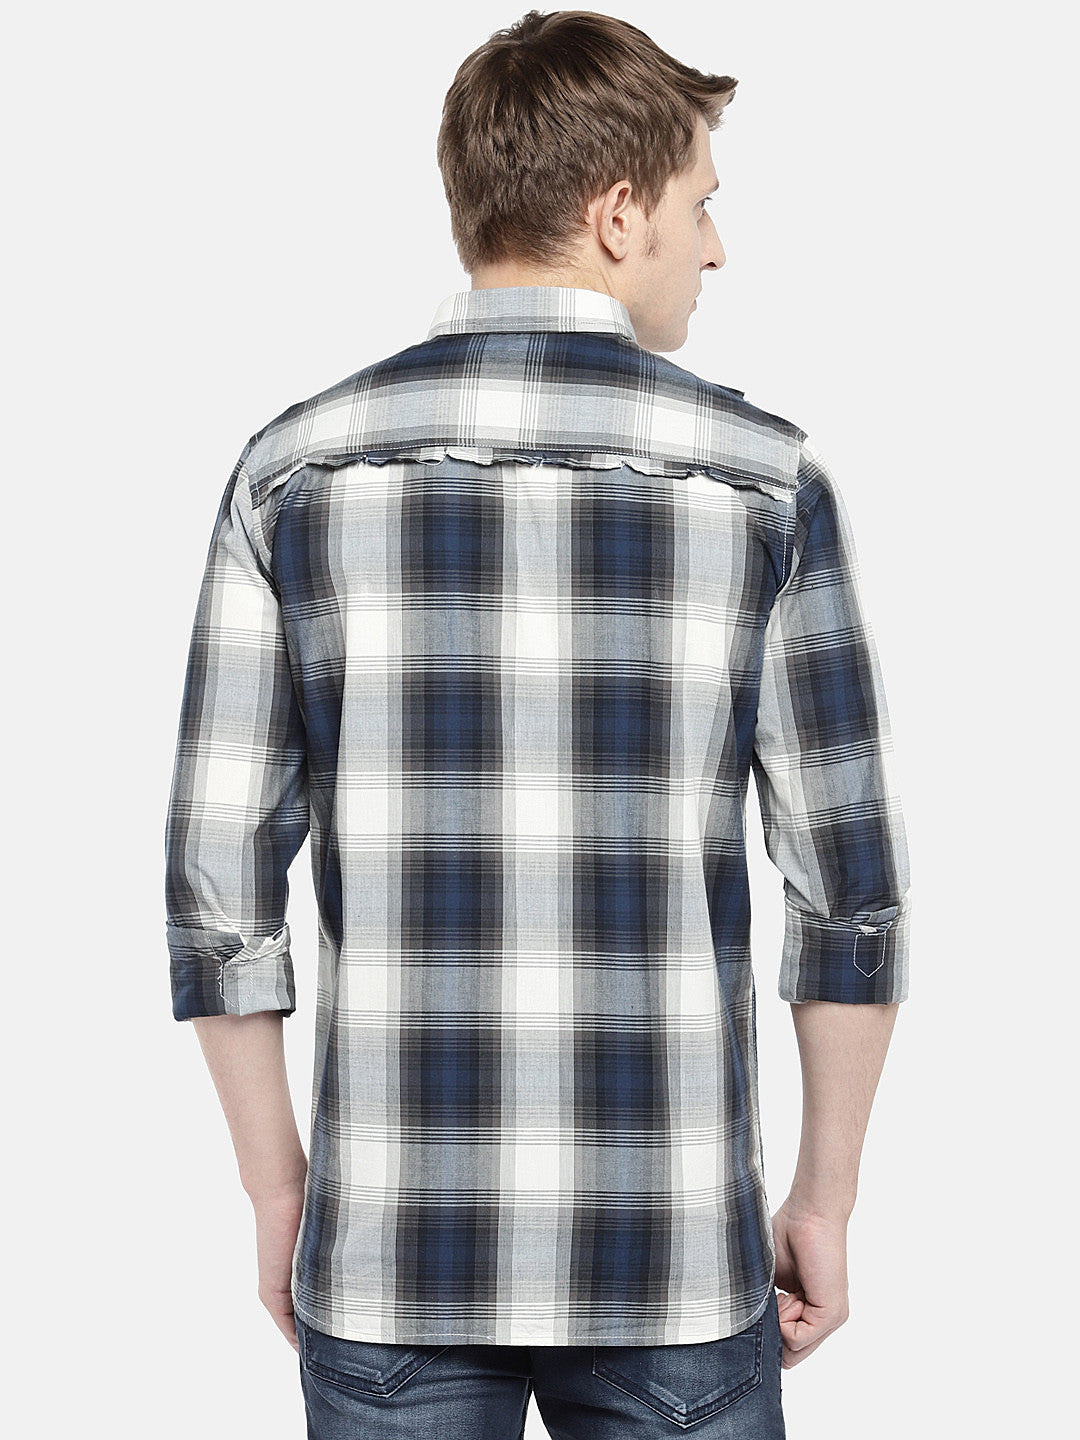 Grey & Navy Blue Regular Fit Checked Casual Shirt-3